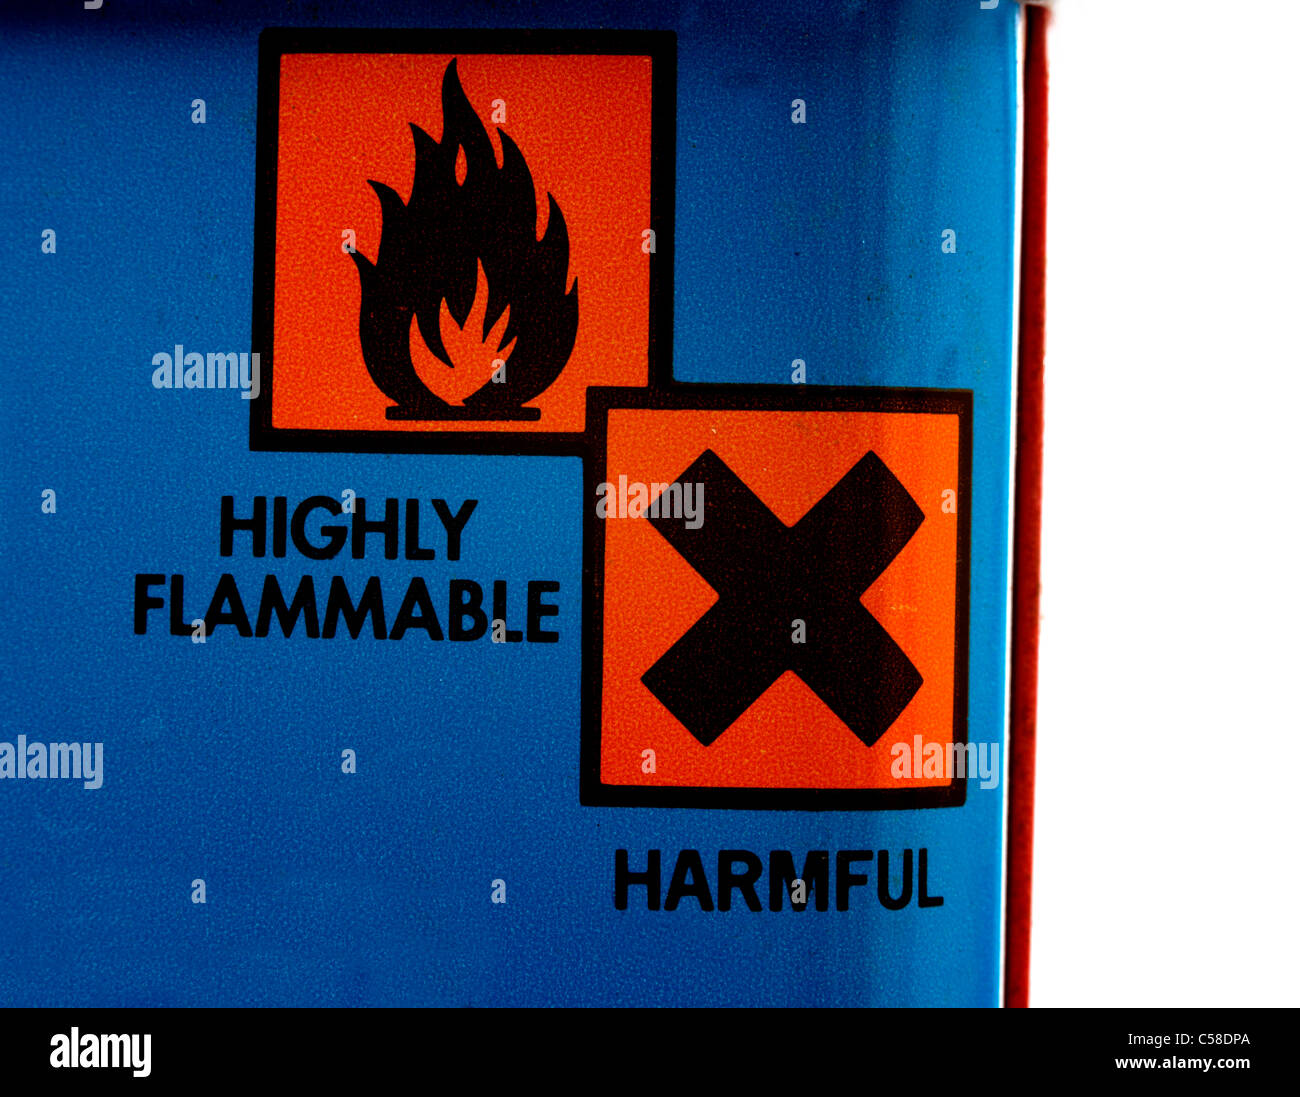 Highly Flammable And Harmful Warning Symbols On Lighter Fluid - Stock Image